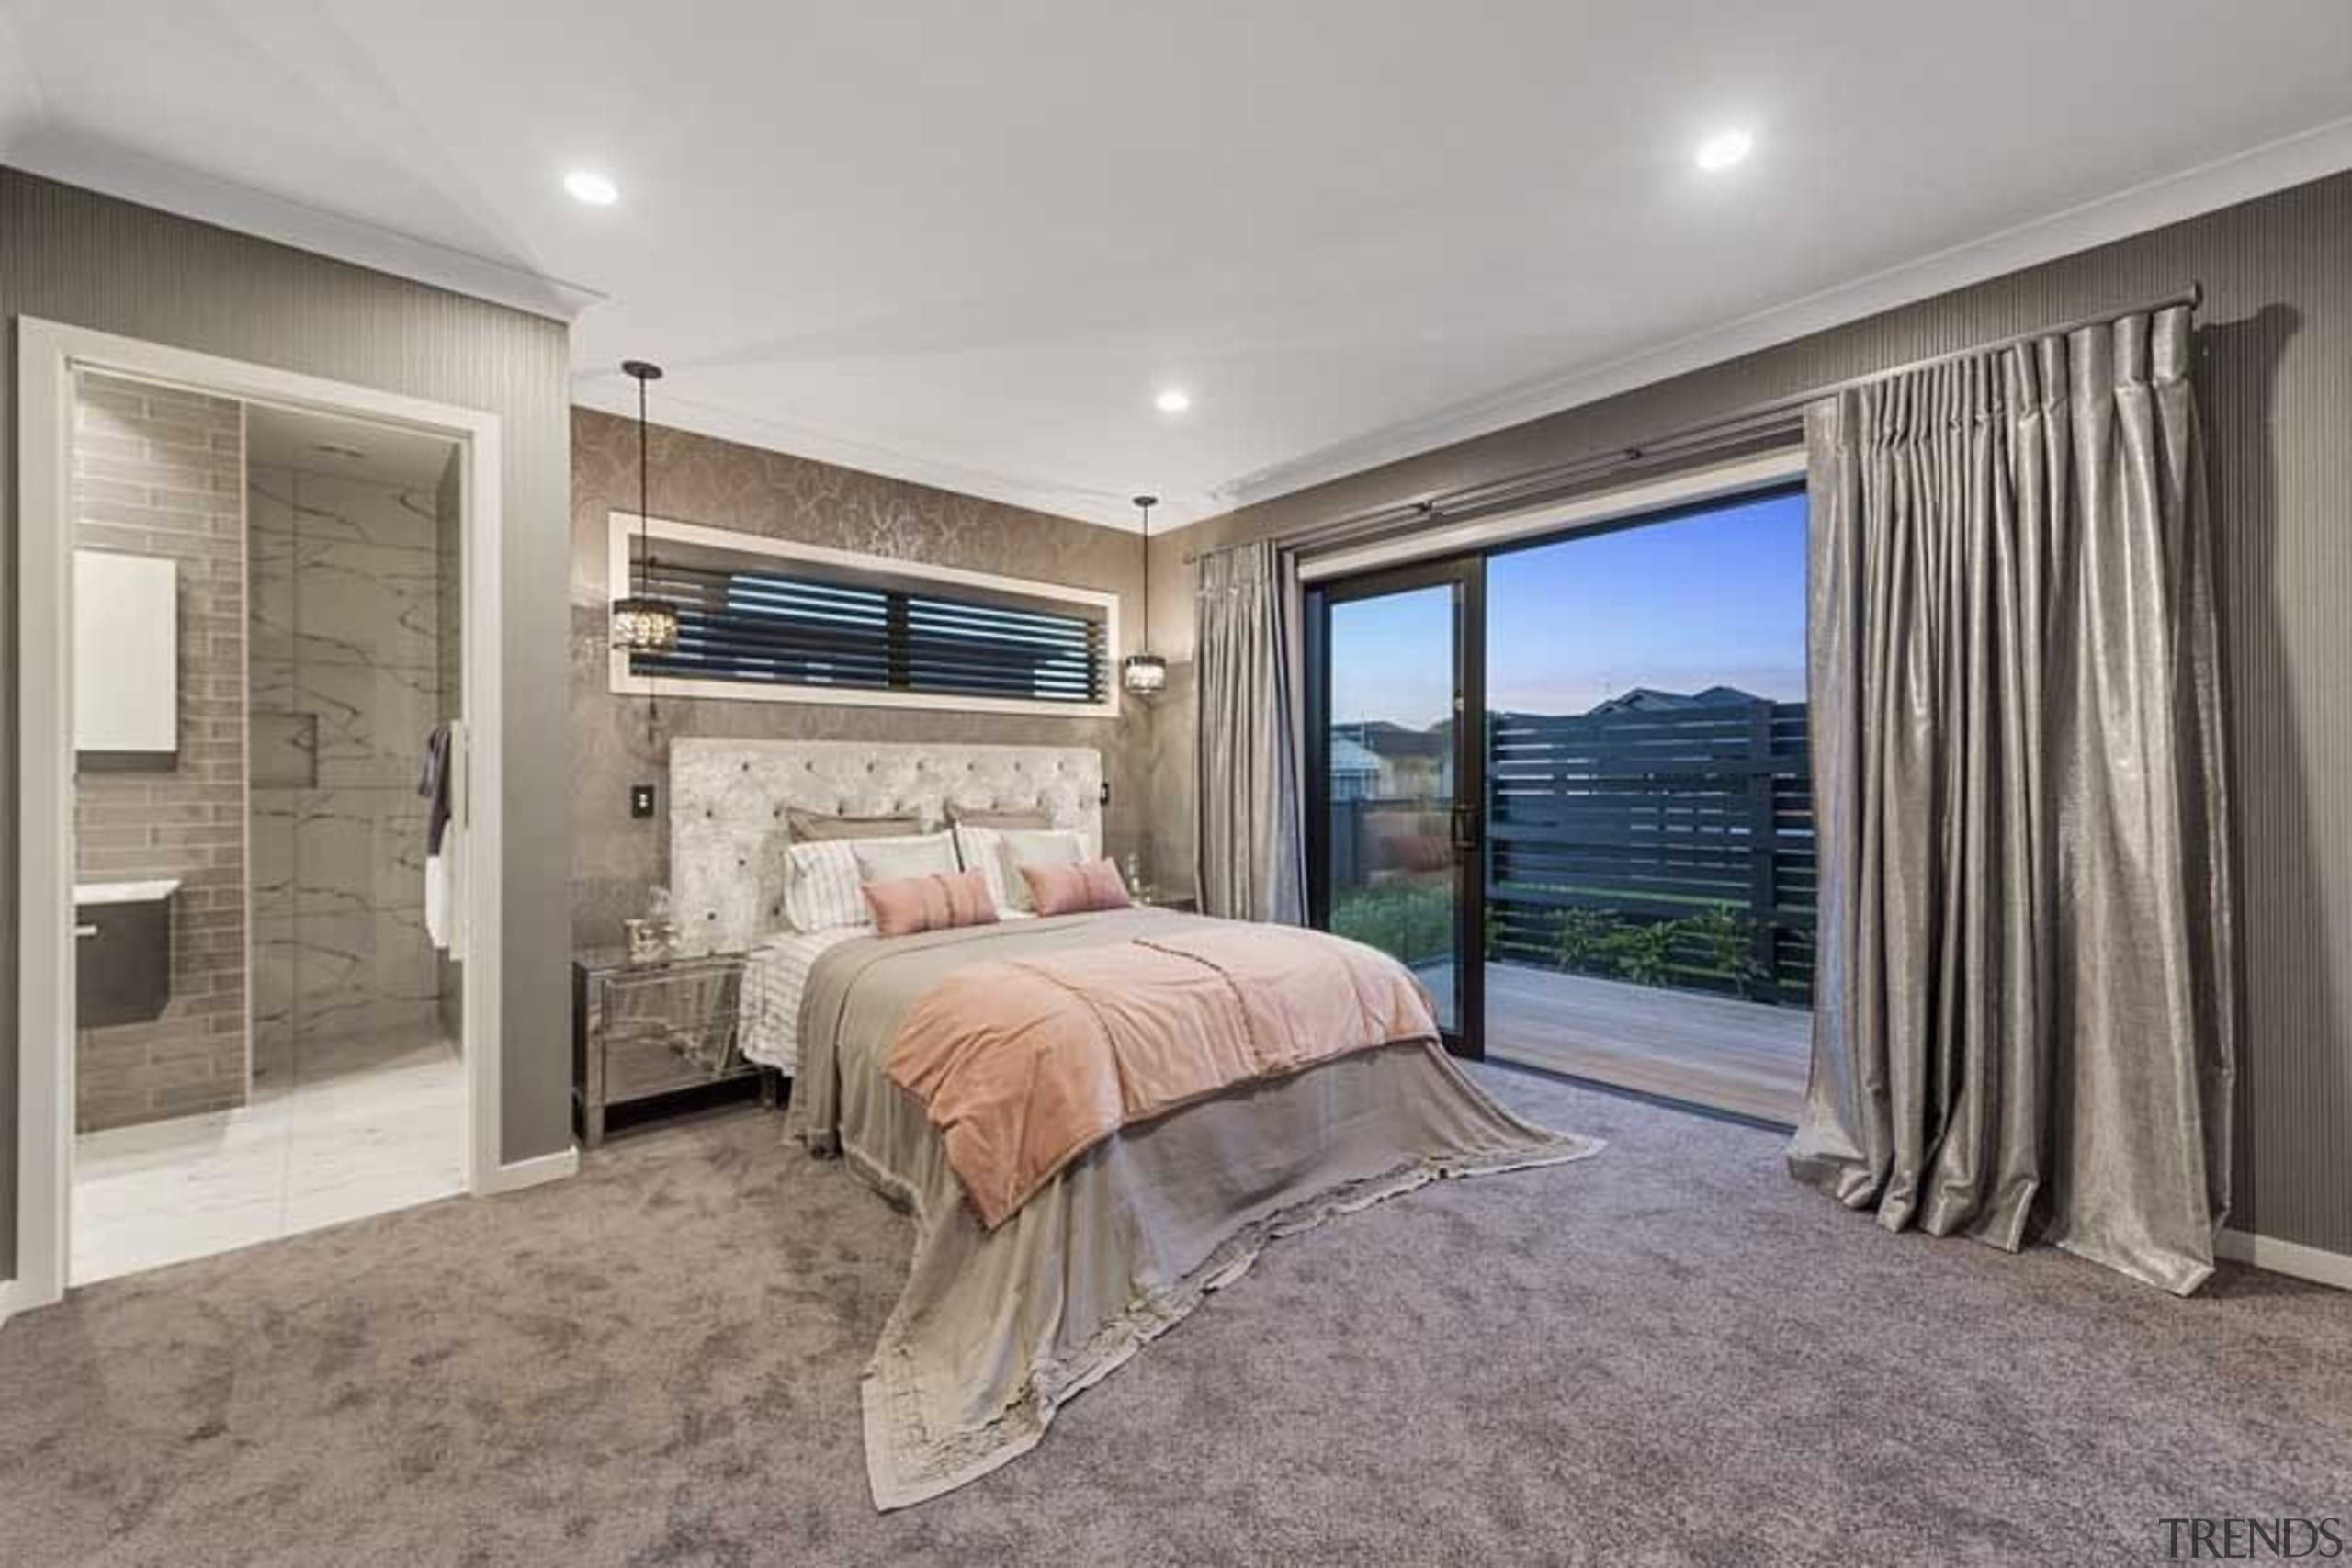 This master suite had a real sense of bedroom, ceiling, estate, home, interior design, property, real estate, room, window, gray